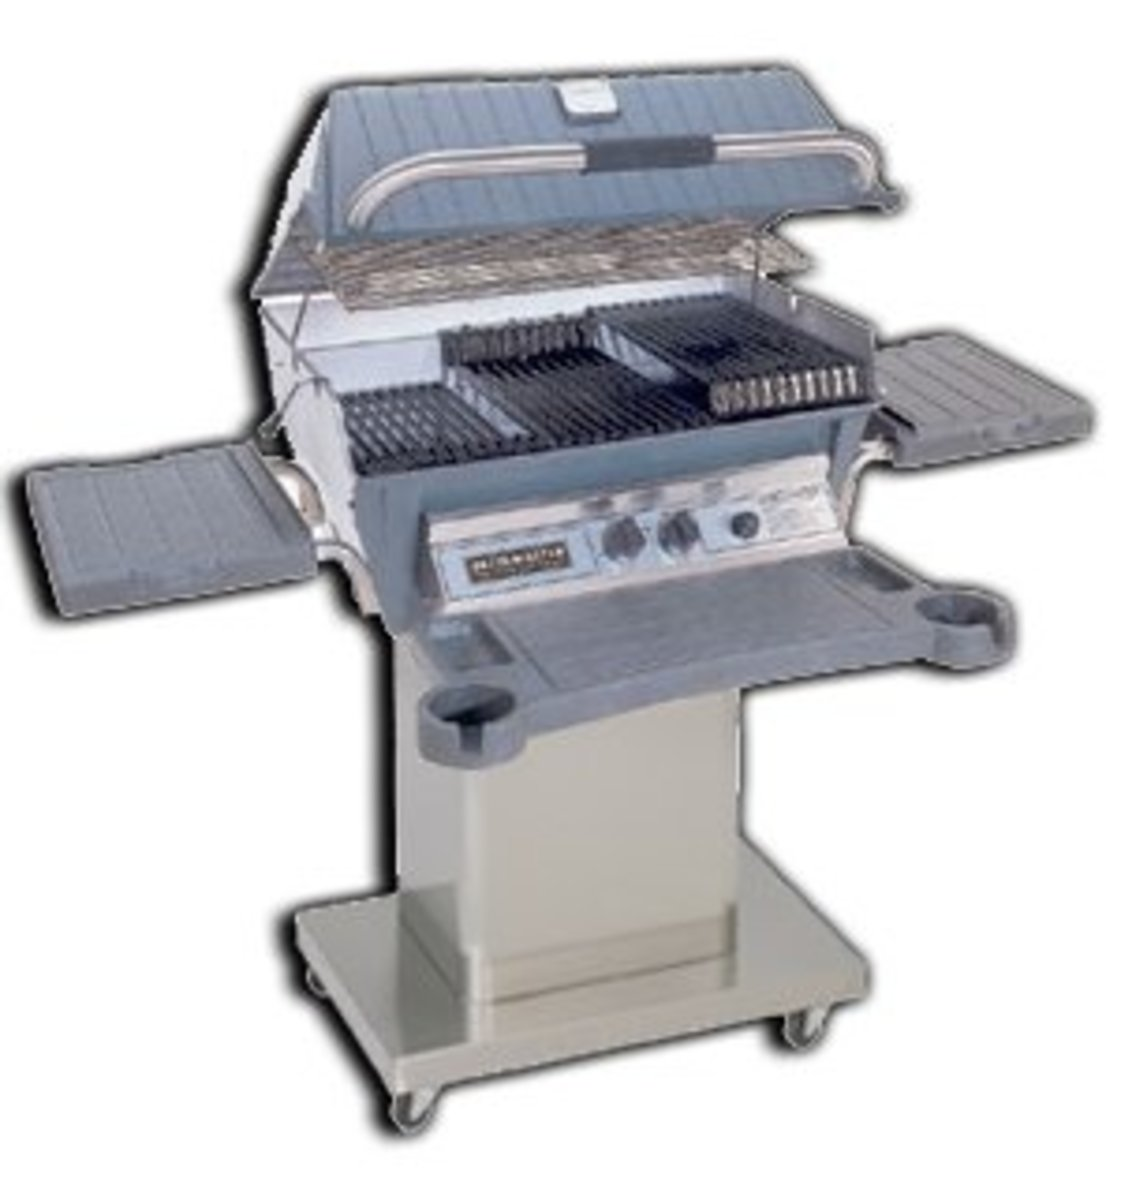 Broilmaster BBQ grill cooking grates have the ability to change their distance from the gas flame because of the design of the coking grates.